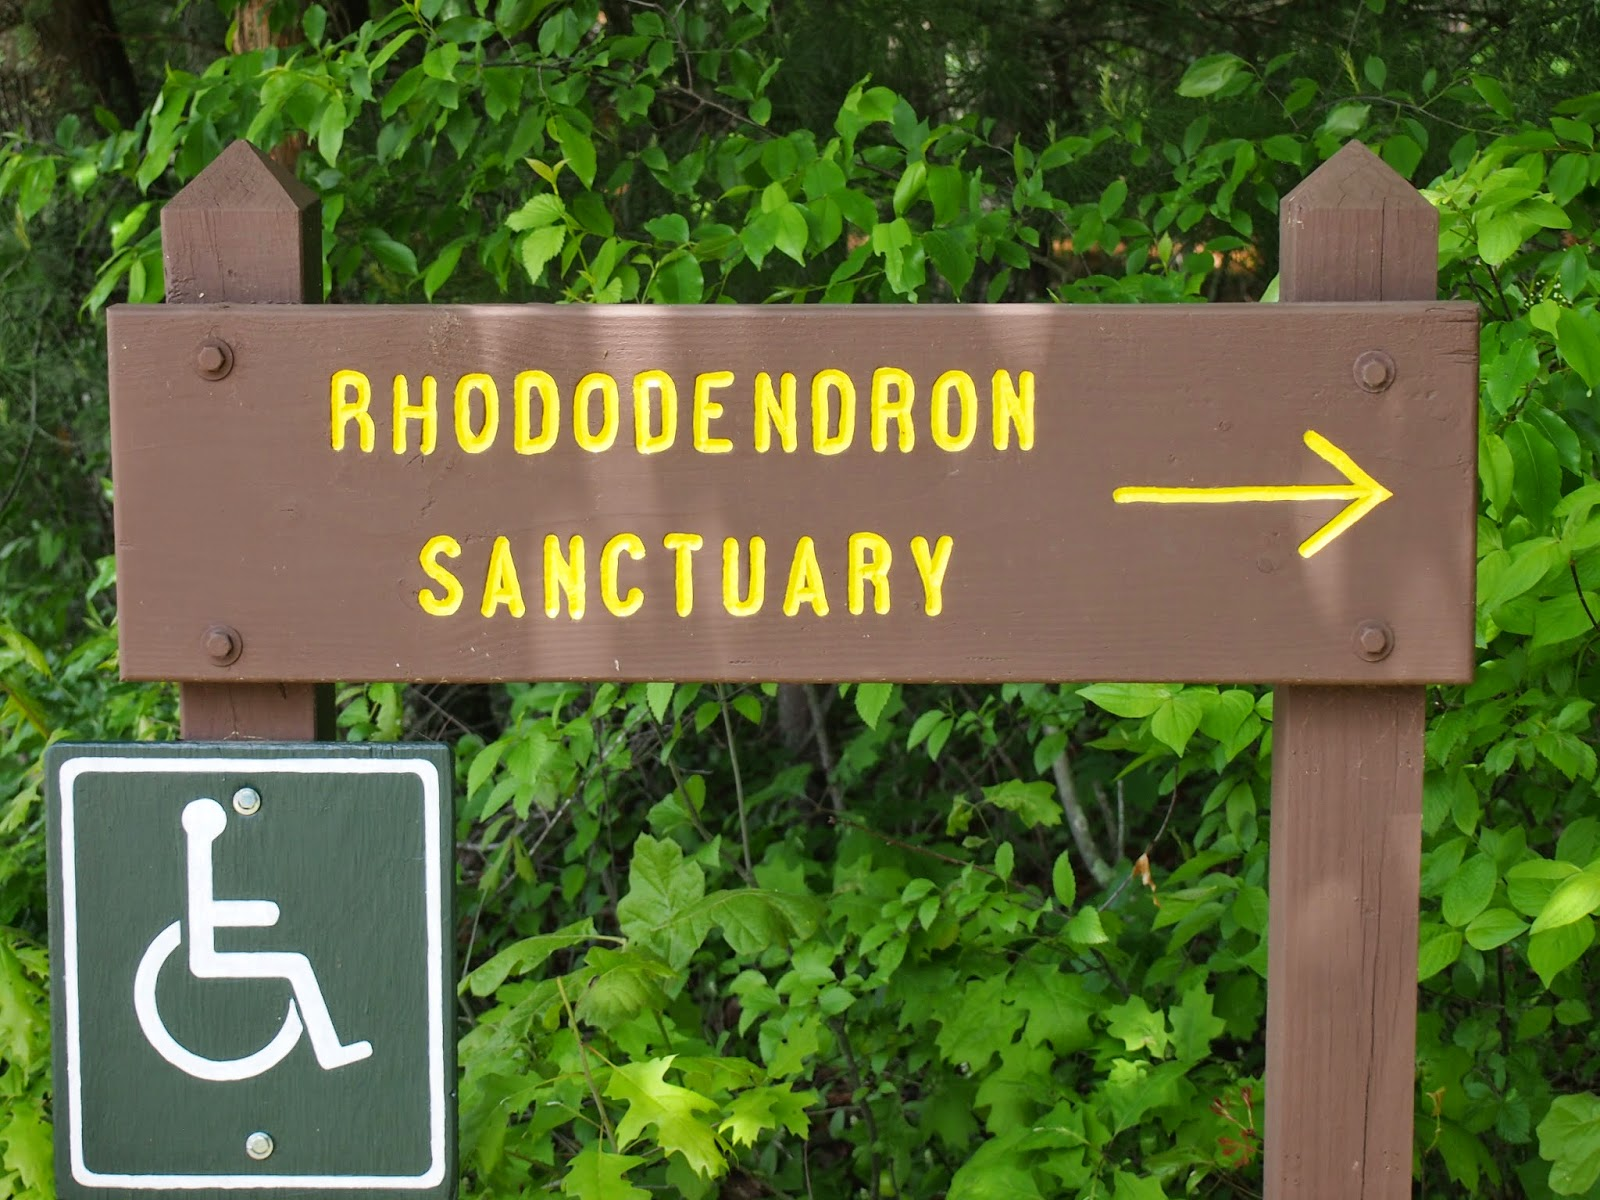 Hopewille Pond State Park and Rhododendron Sanctuary